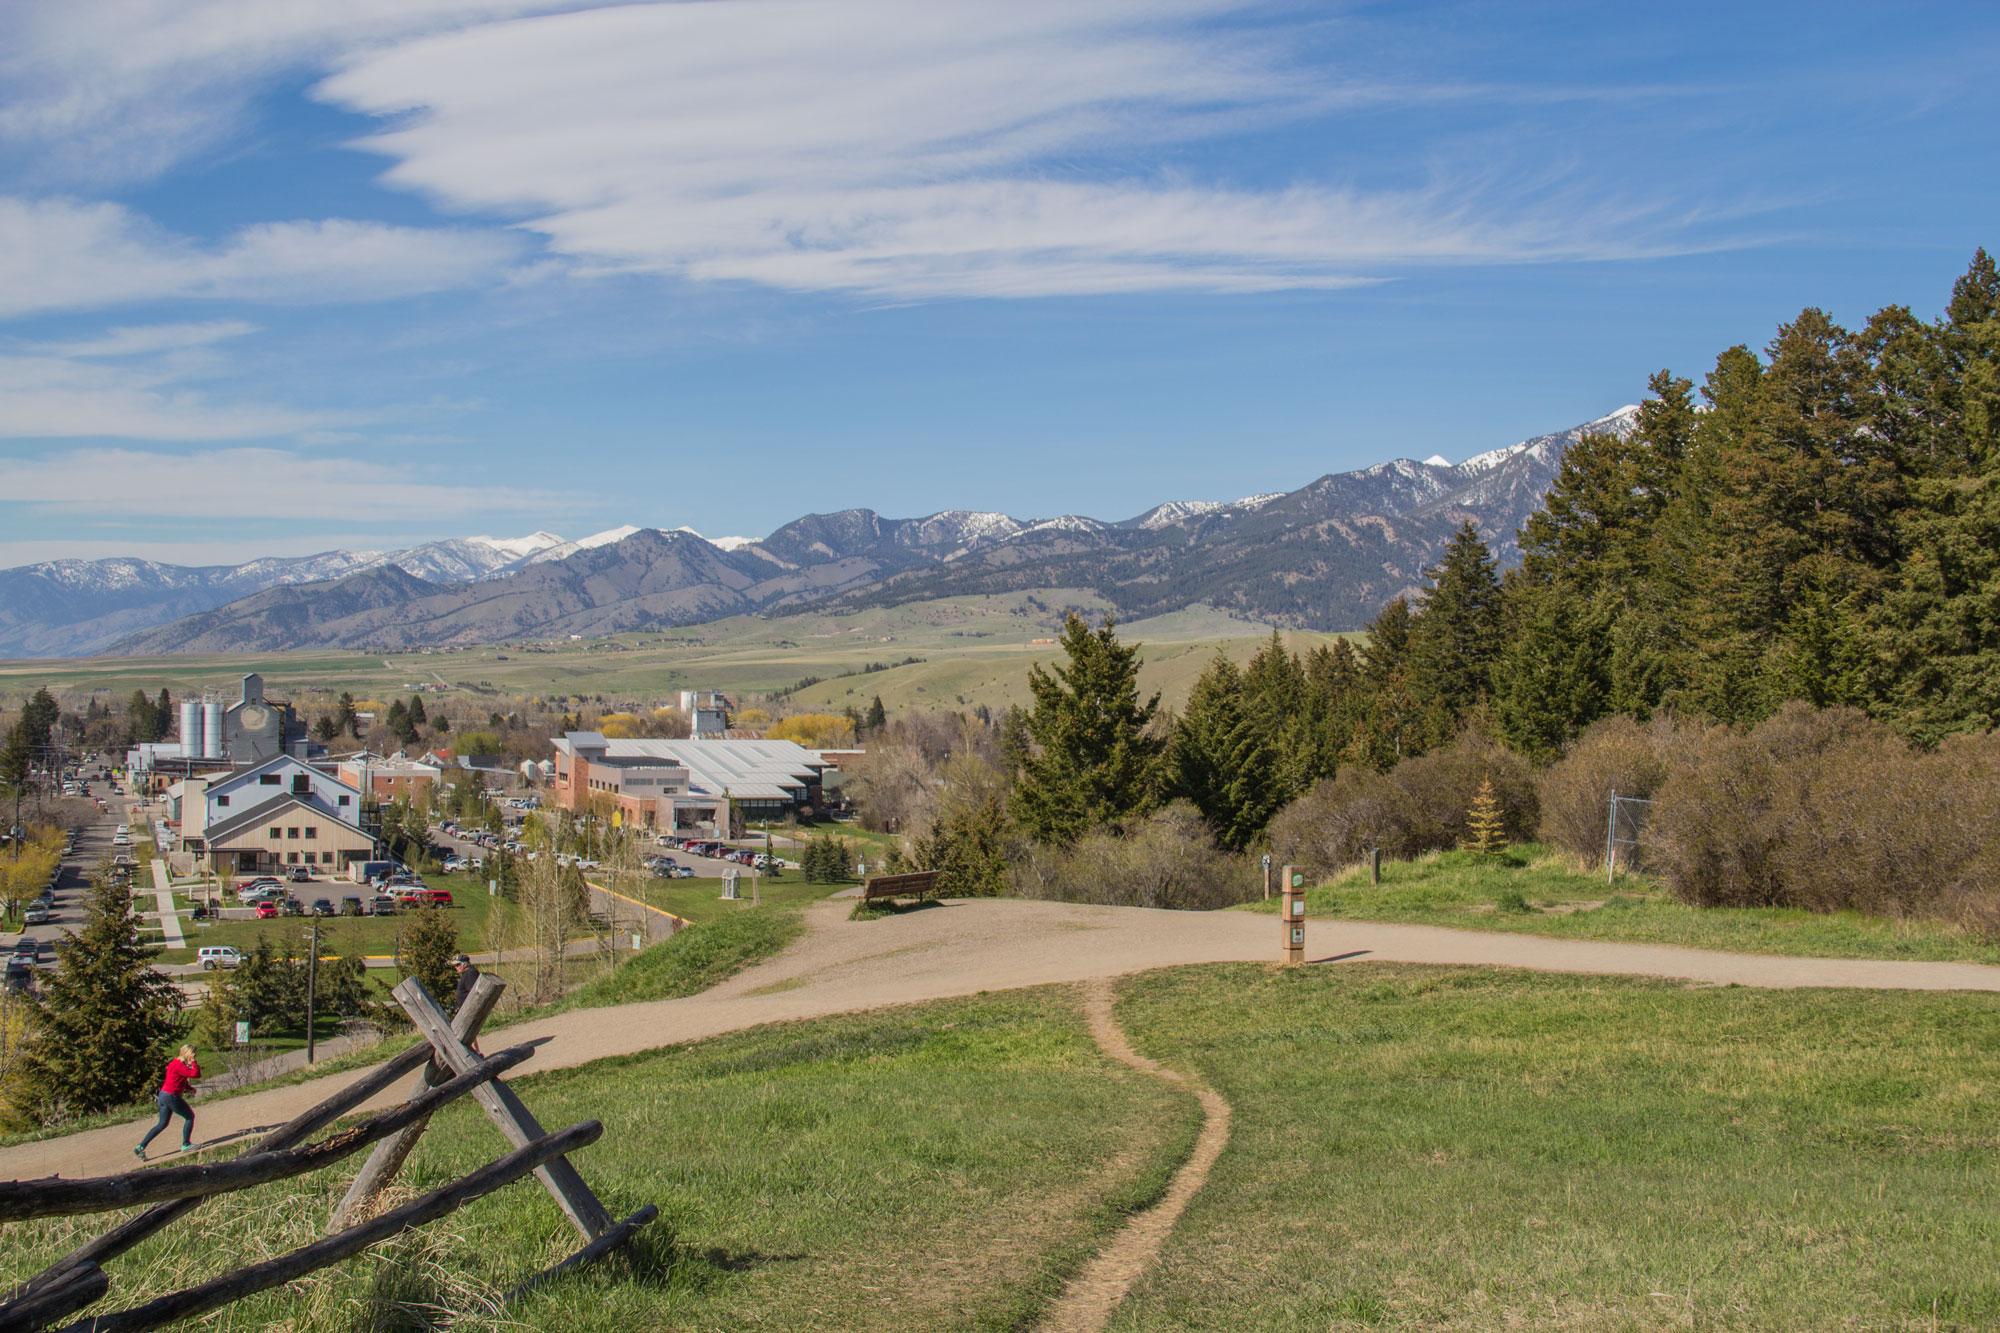 Best Spring Hikes and Trails in Bozeman, MT